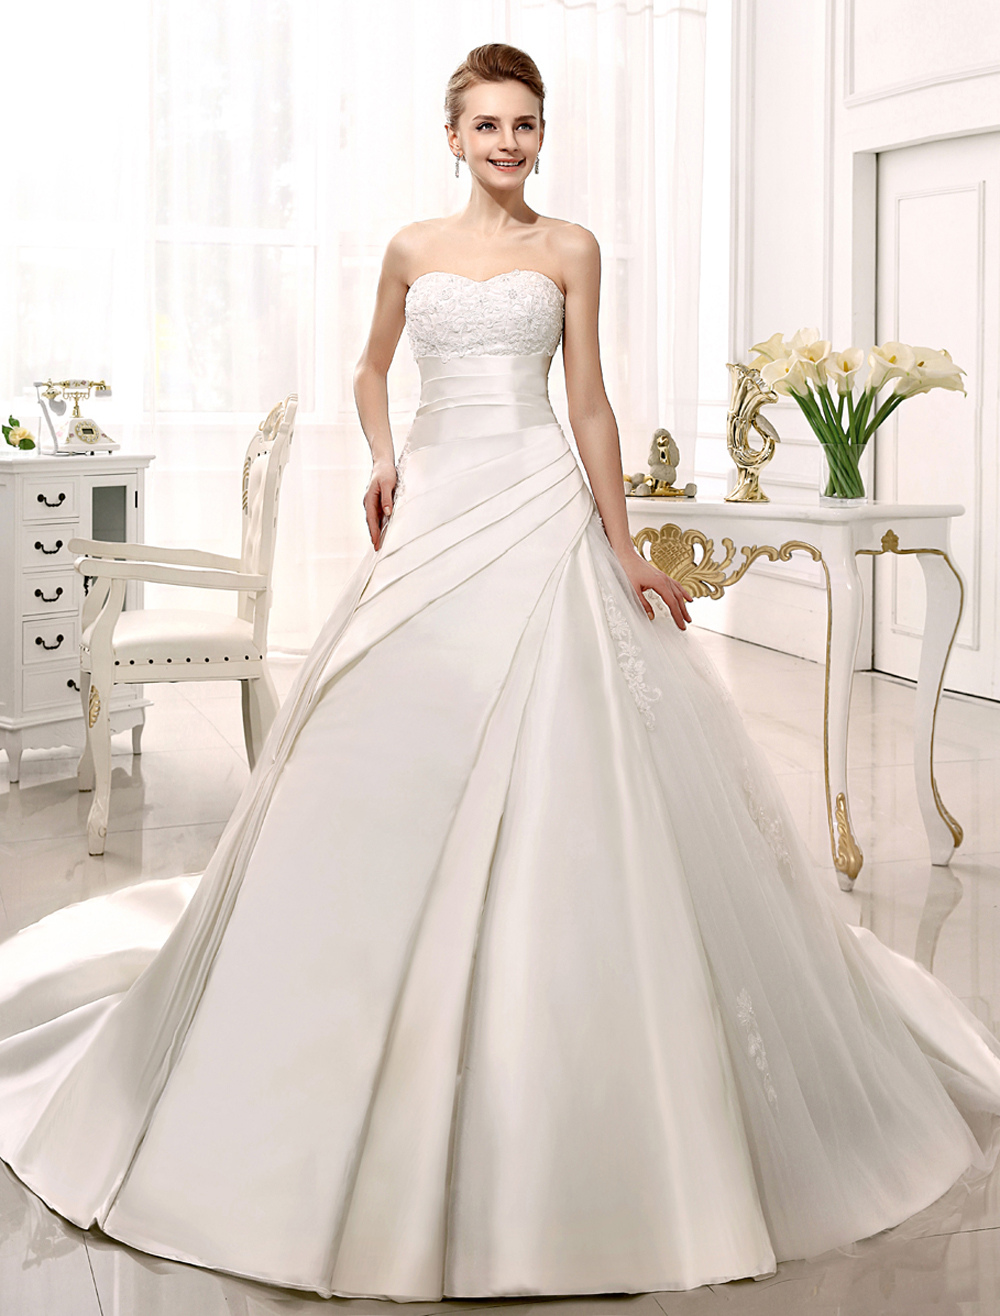 Ivory Backless Strapless Lace Satin Bridal Wedding Gown Milanoo